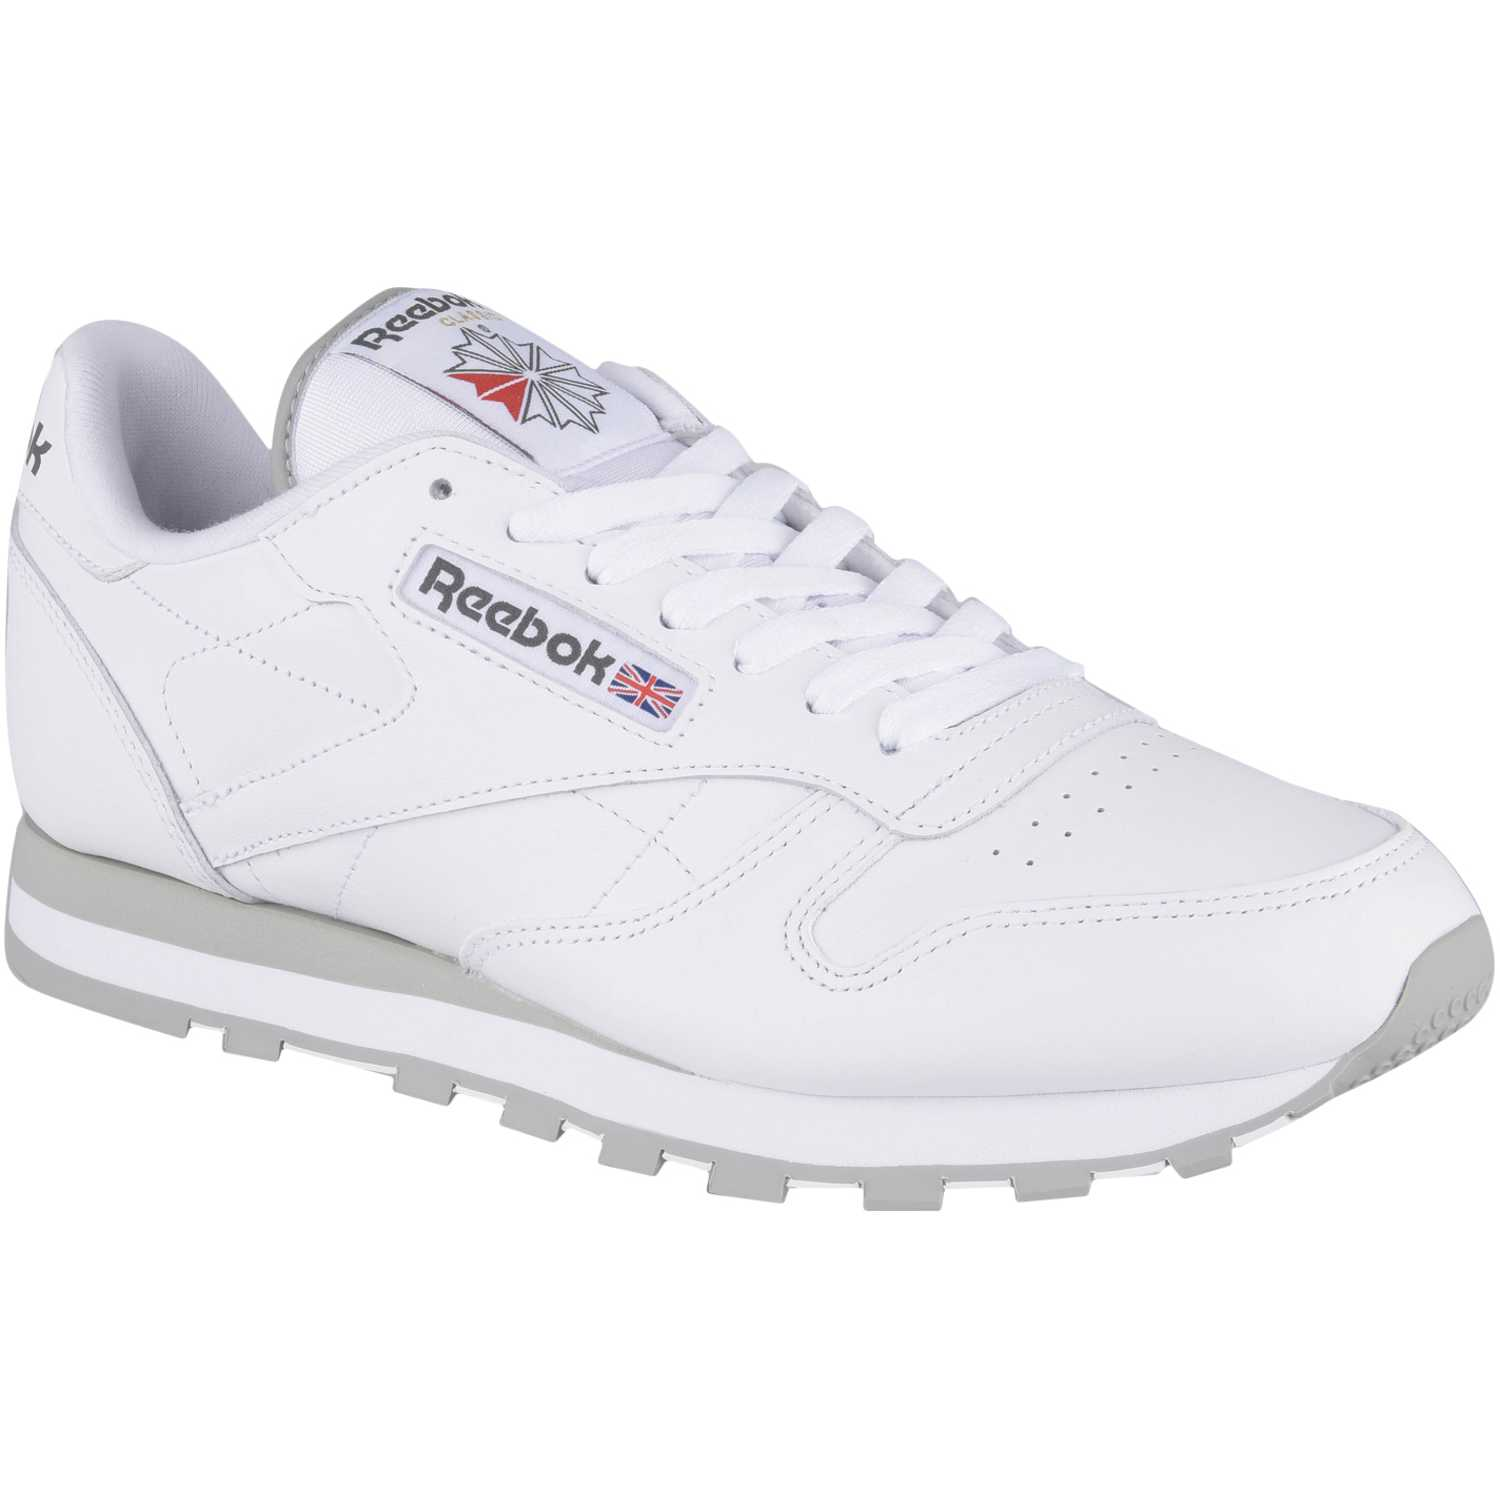 Reebok Classic Leather Blanco Para caminar